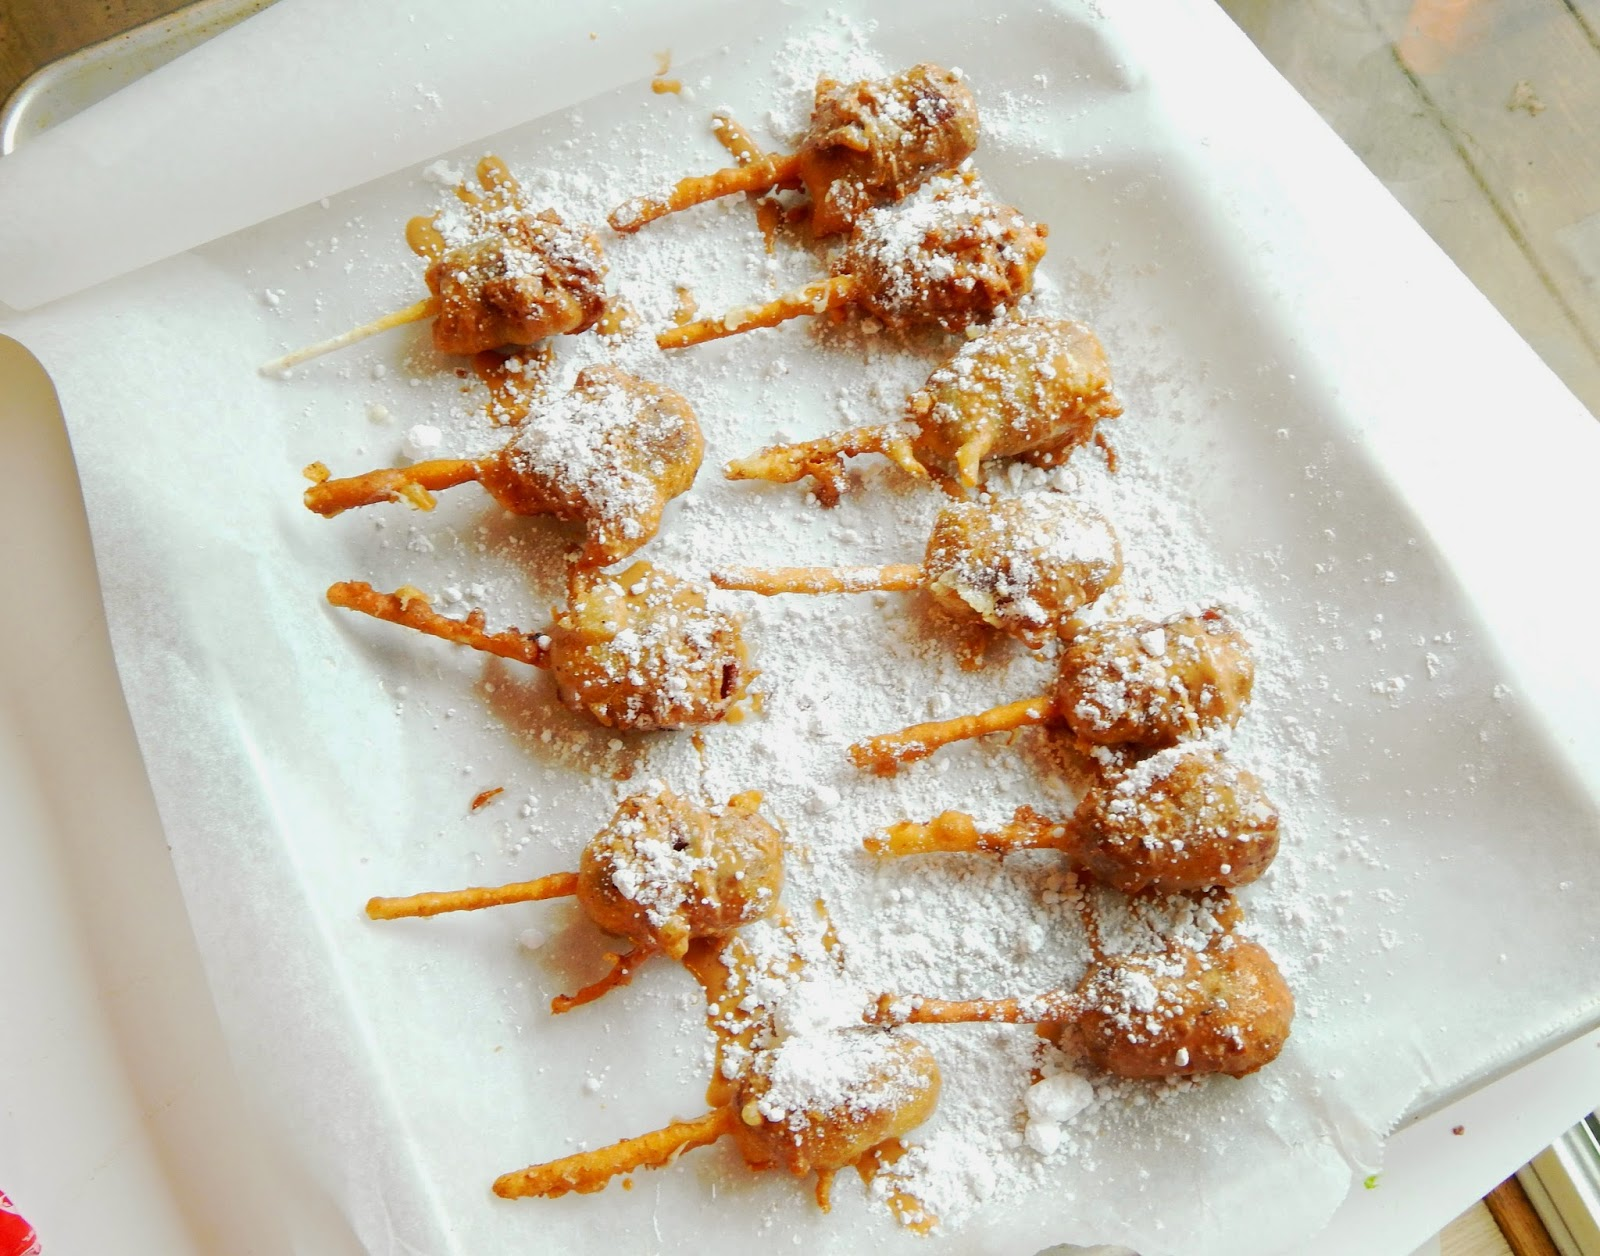 #BigGameTreats #ad #cbias Deep Fried SNICKERS Bars